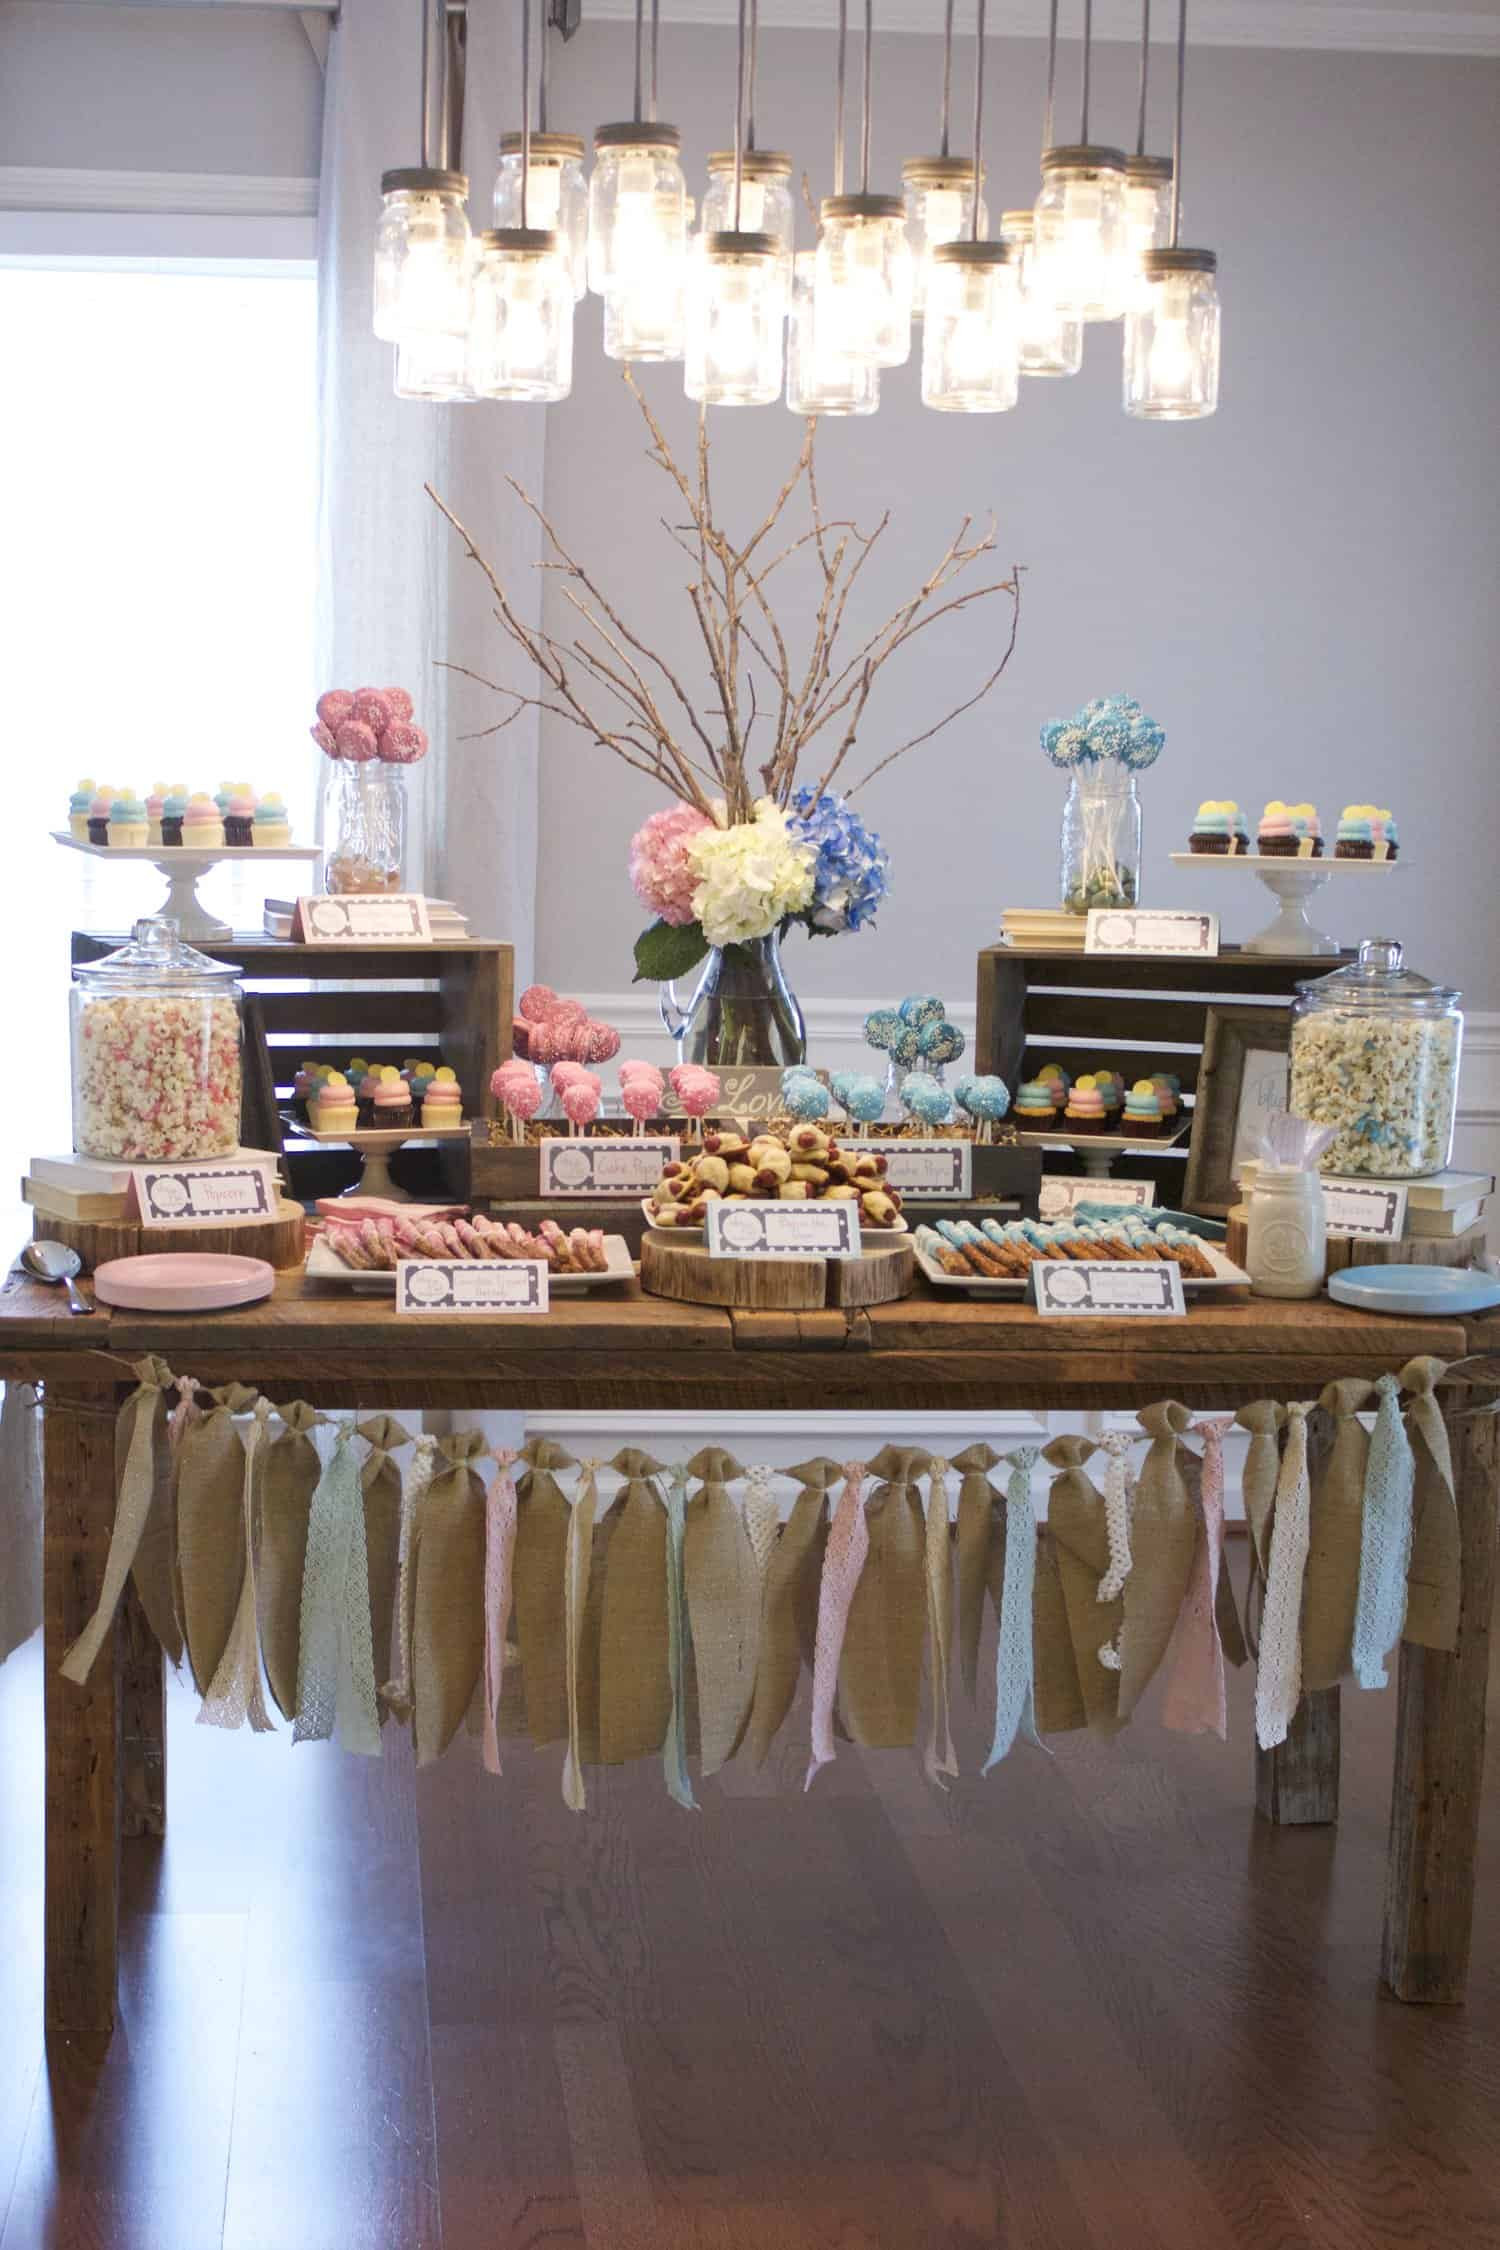 Gender Reveal Ideas For Party  17 Tips To Throw An Unfor table Gender Reveal Party